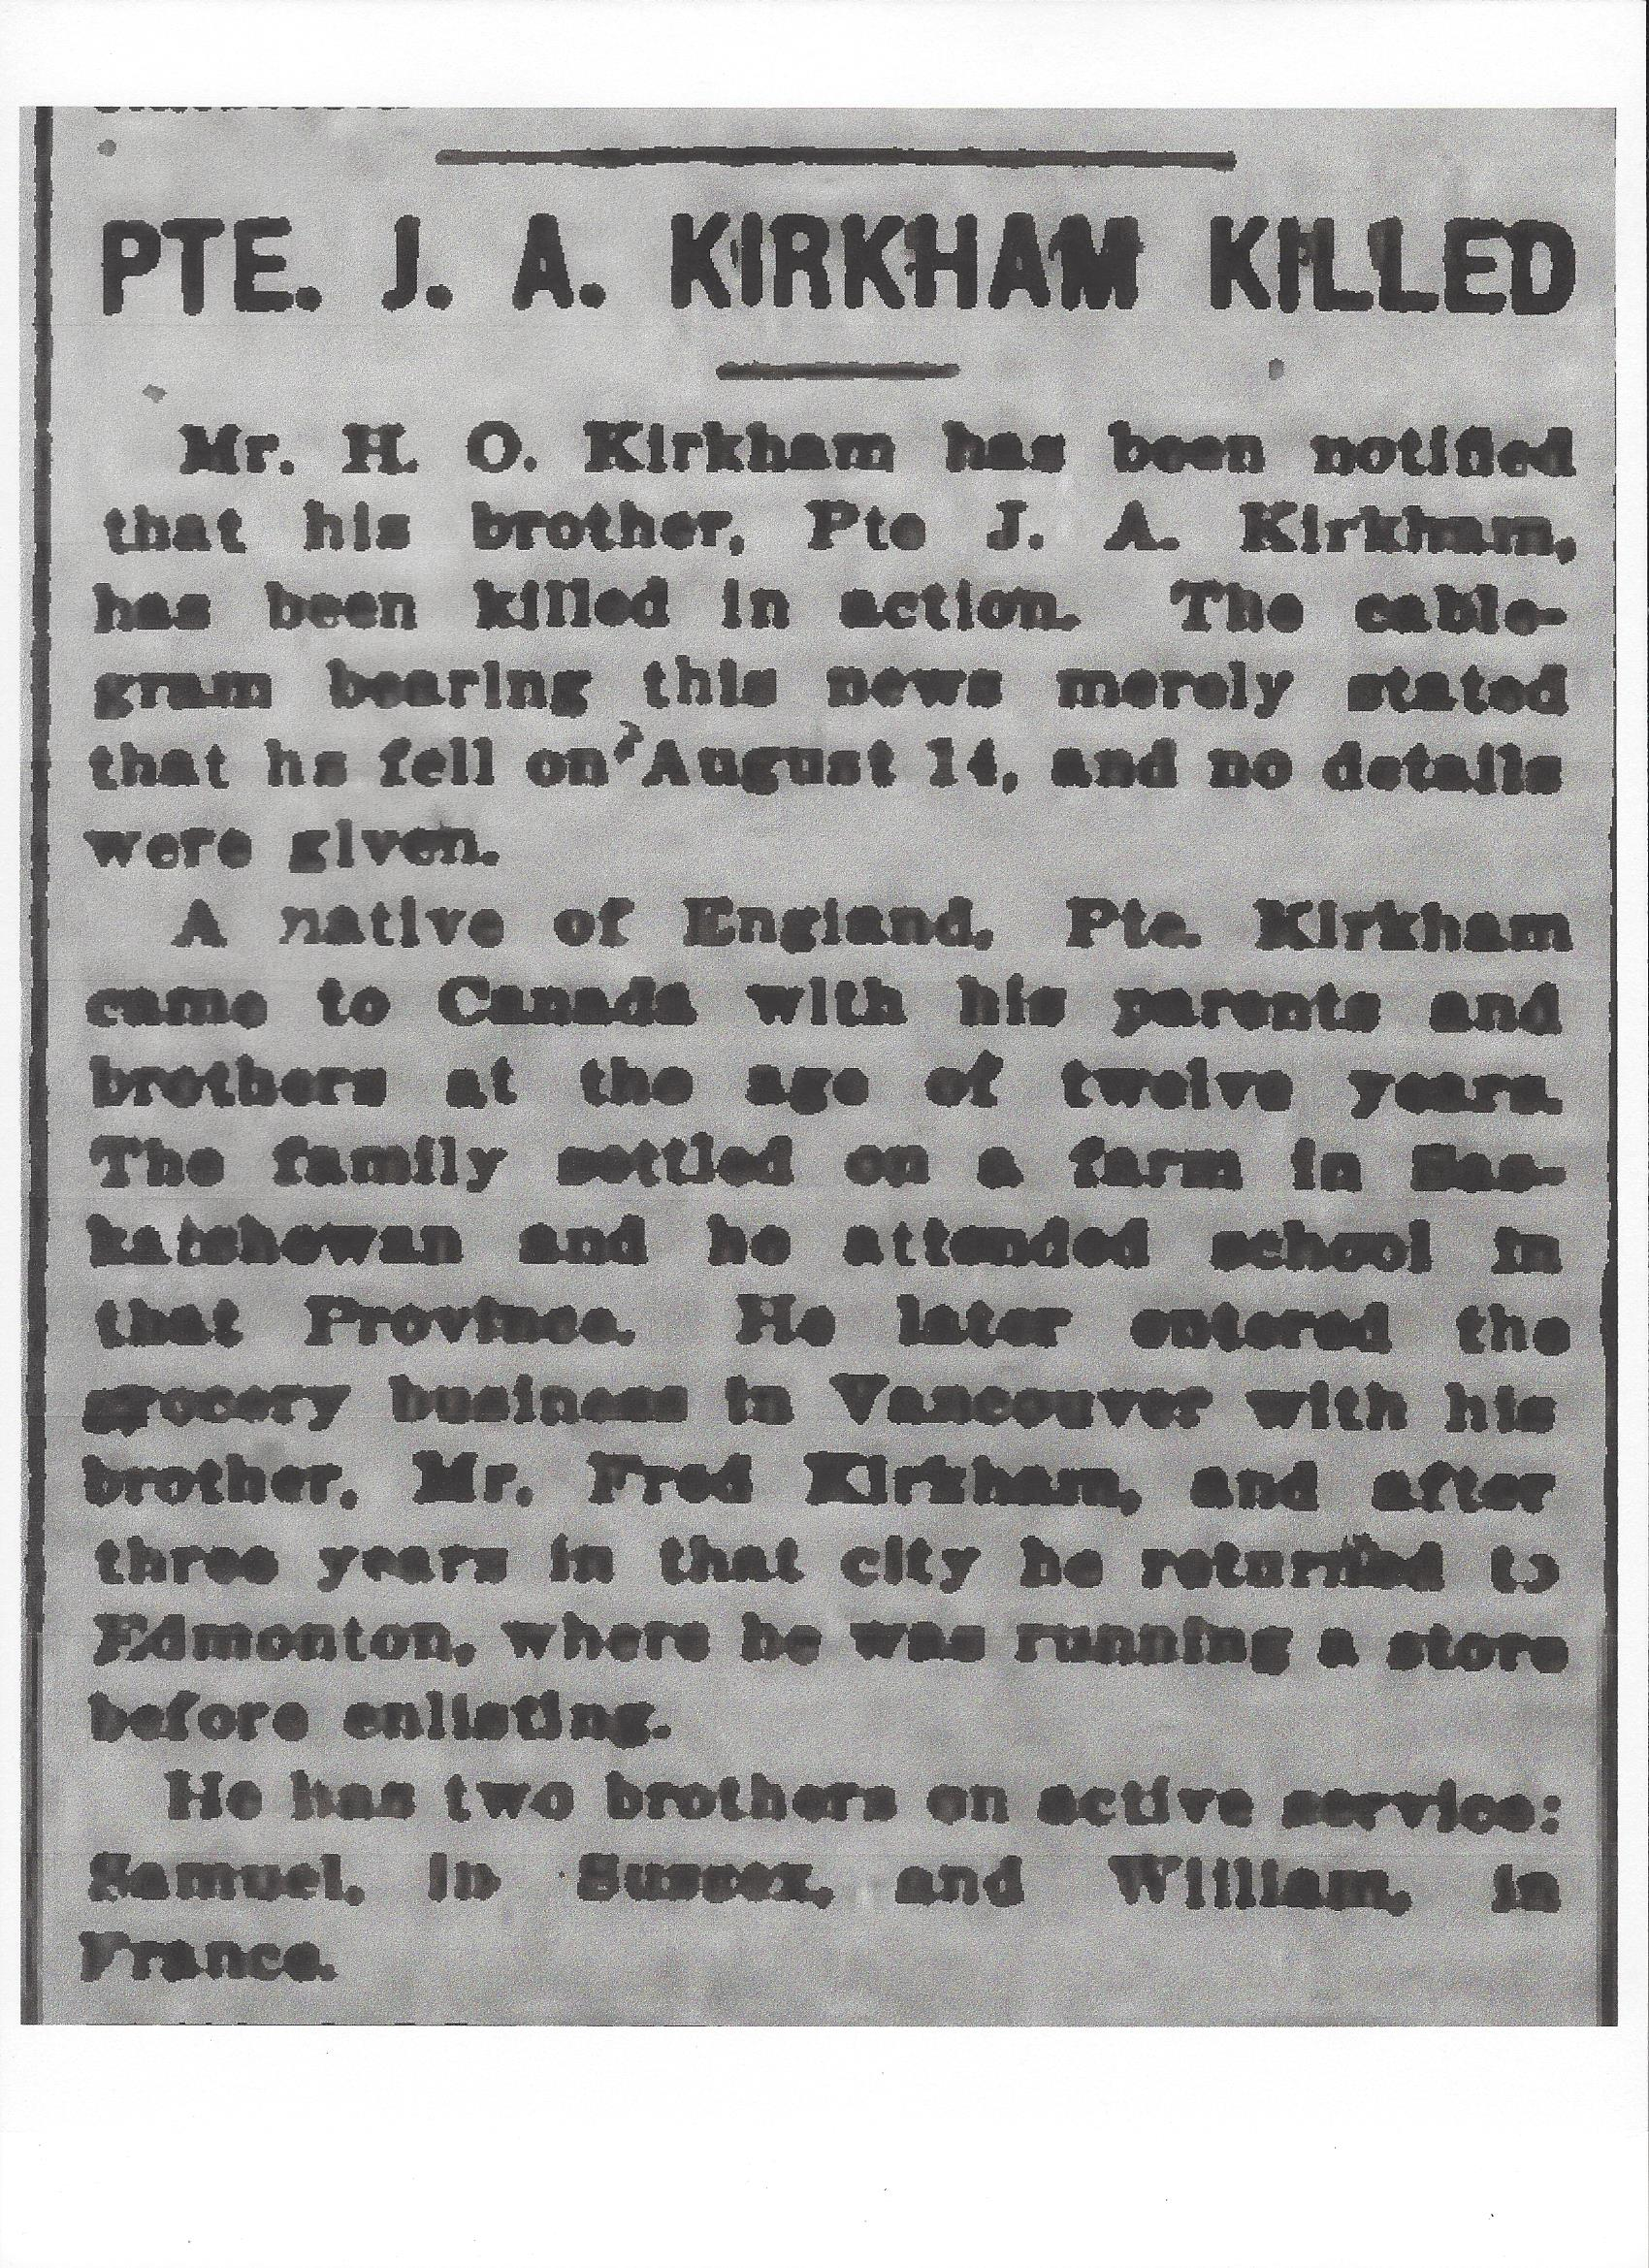 Newspaper clipping– From the Daily Colonist of September 5, 1917. Image taken from web address of http://archive.org/stream/dailycolonist59y231uvic#page/n0/mode/1up